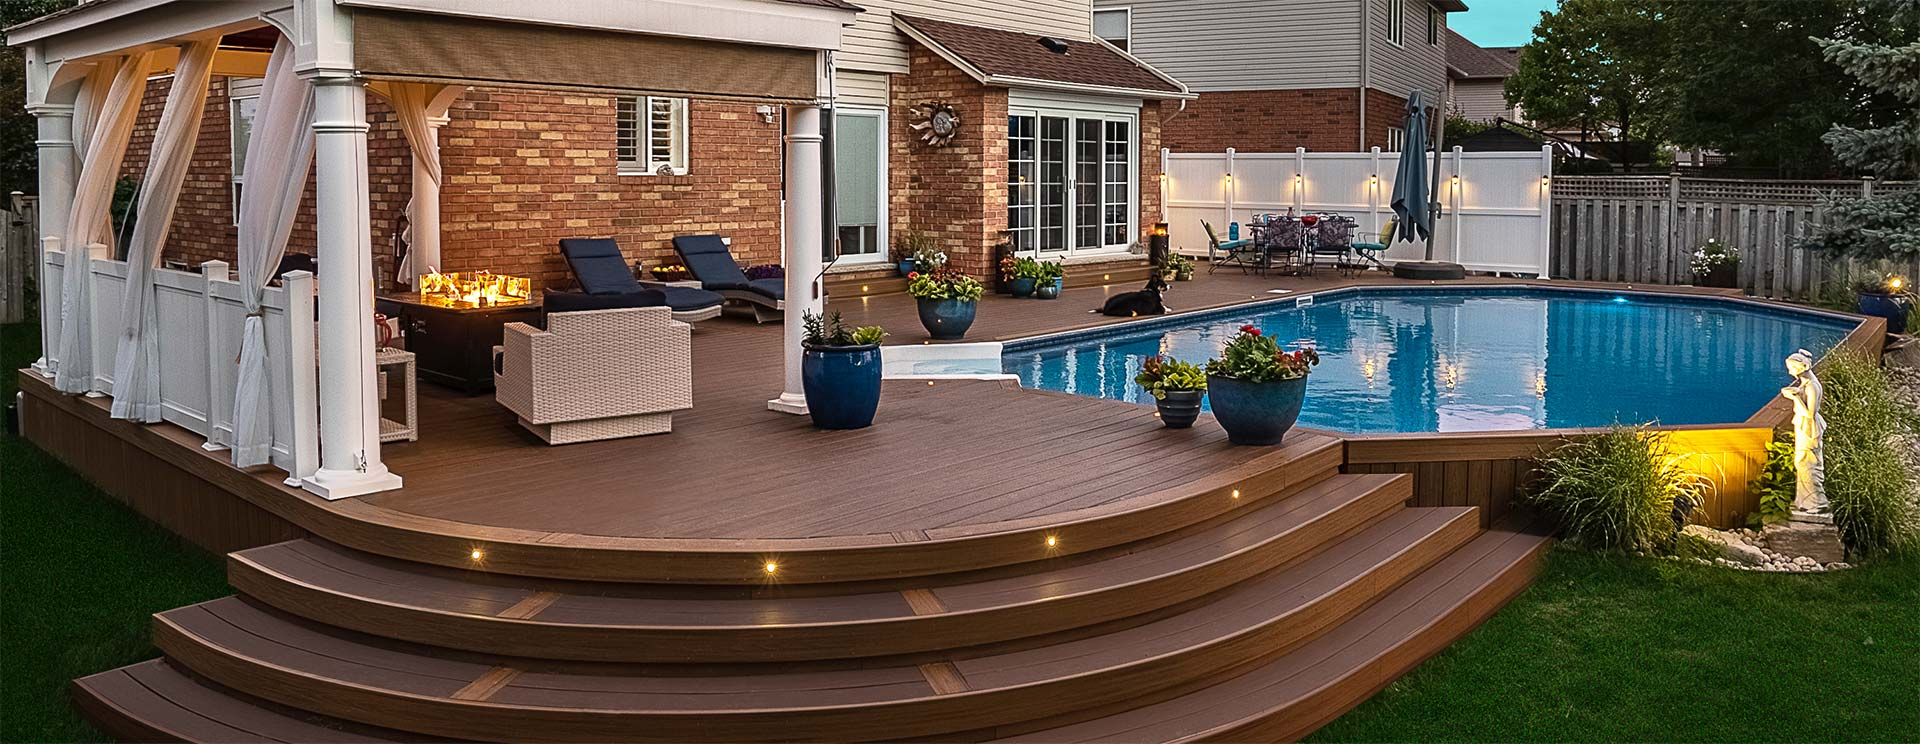 Deck with curved steps and a pool